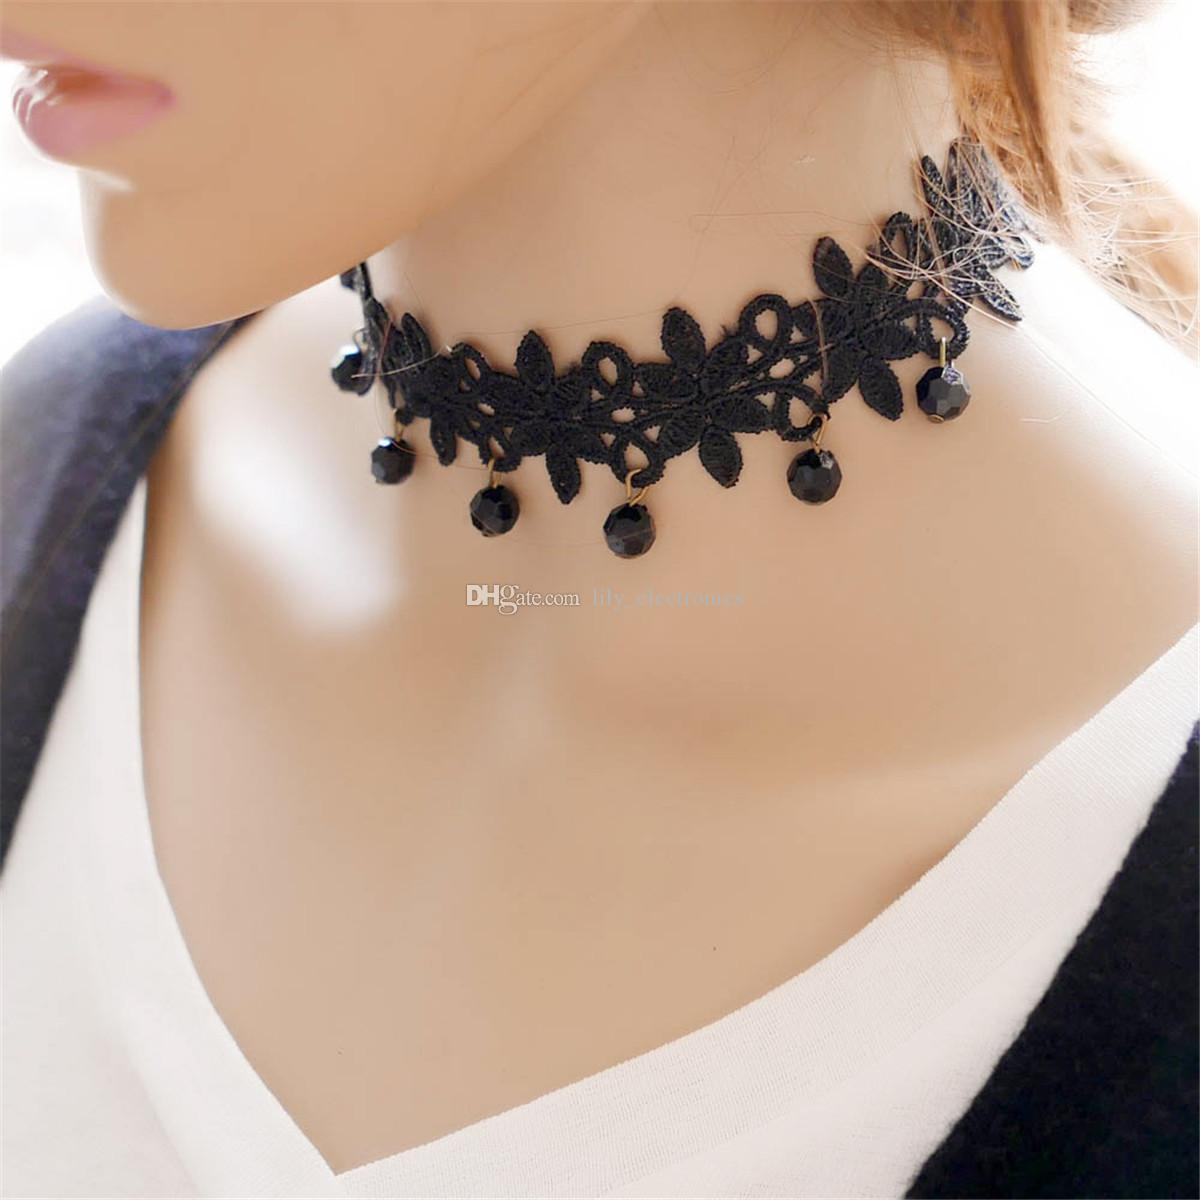 Black Retro Gothic Collar Lace Necklace Crystal Pendant Chock Jewelry For Women Pack of